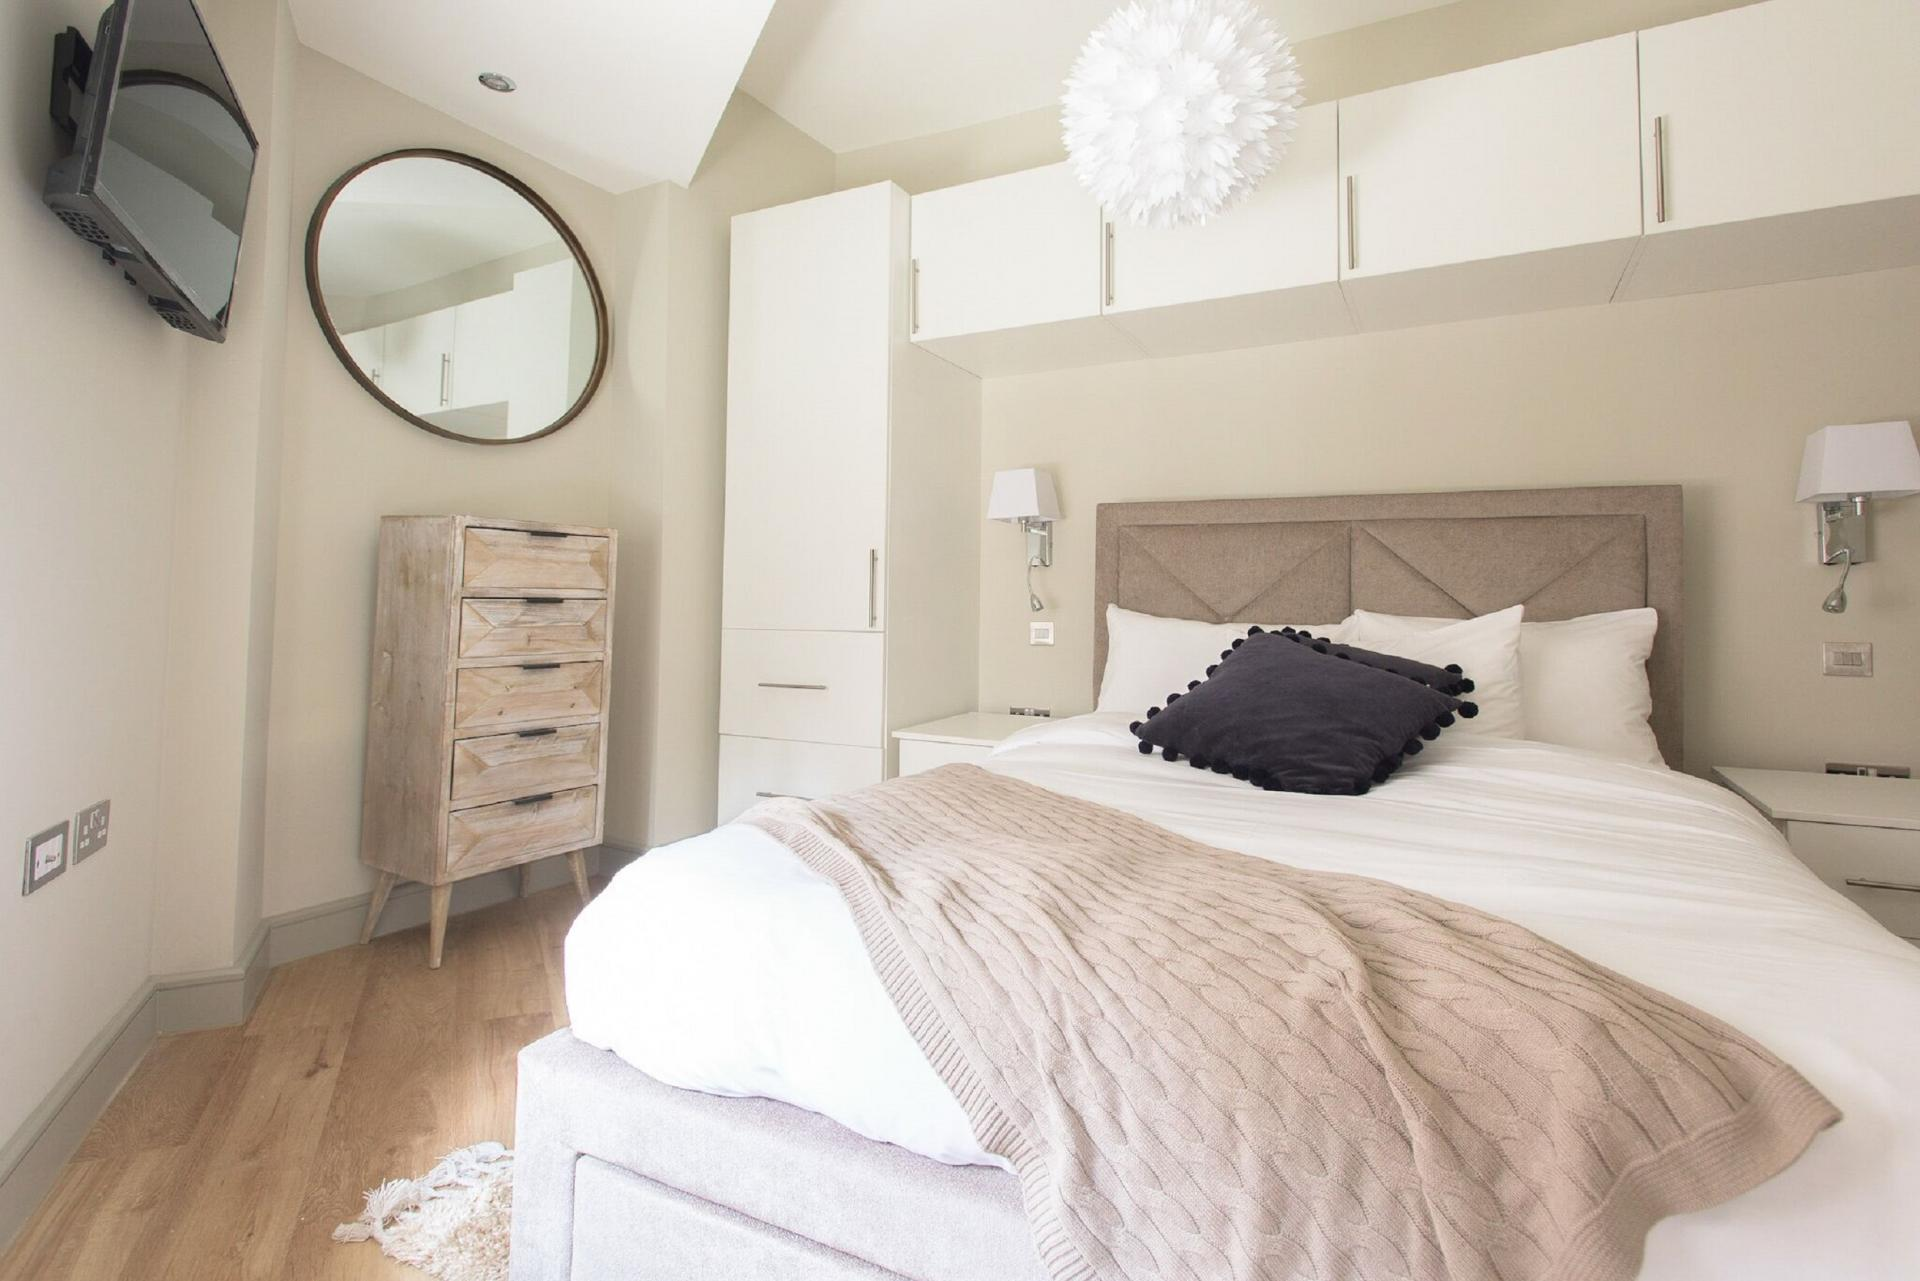 Bedroom at The Soho Loft, Mayfair, London - Citybase Apartments